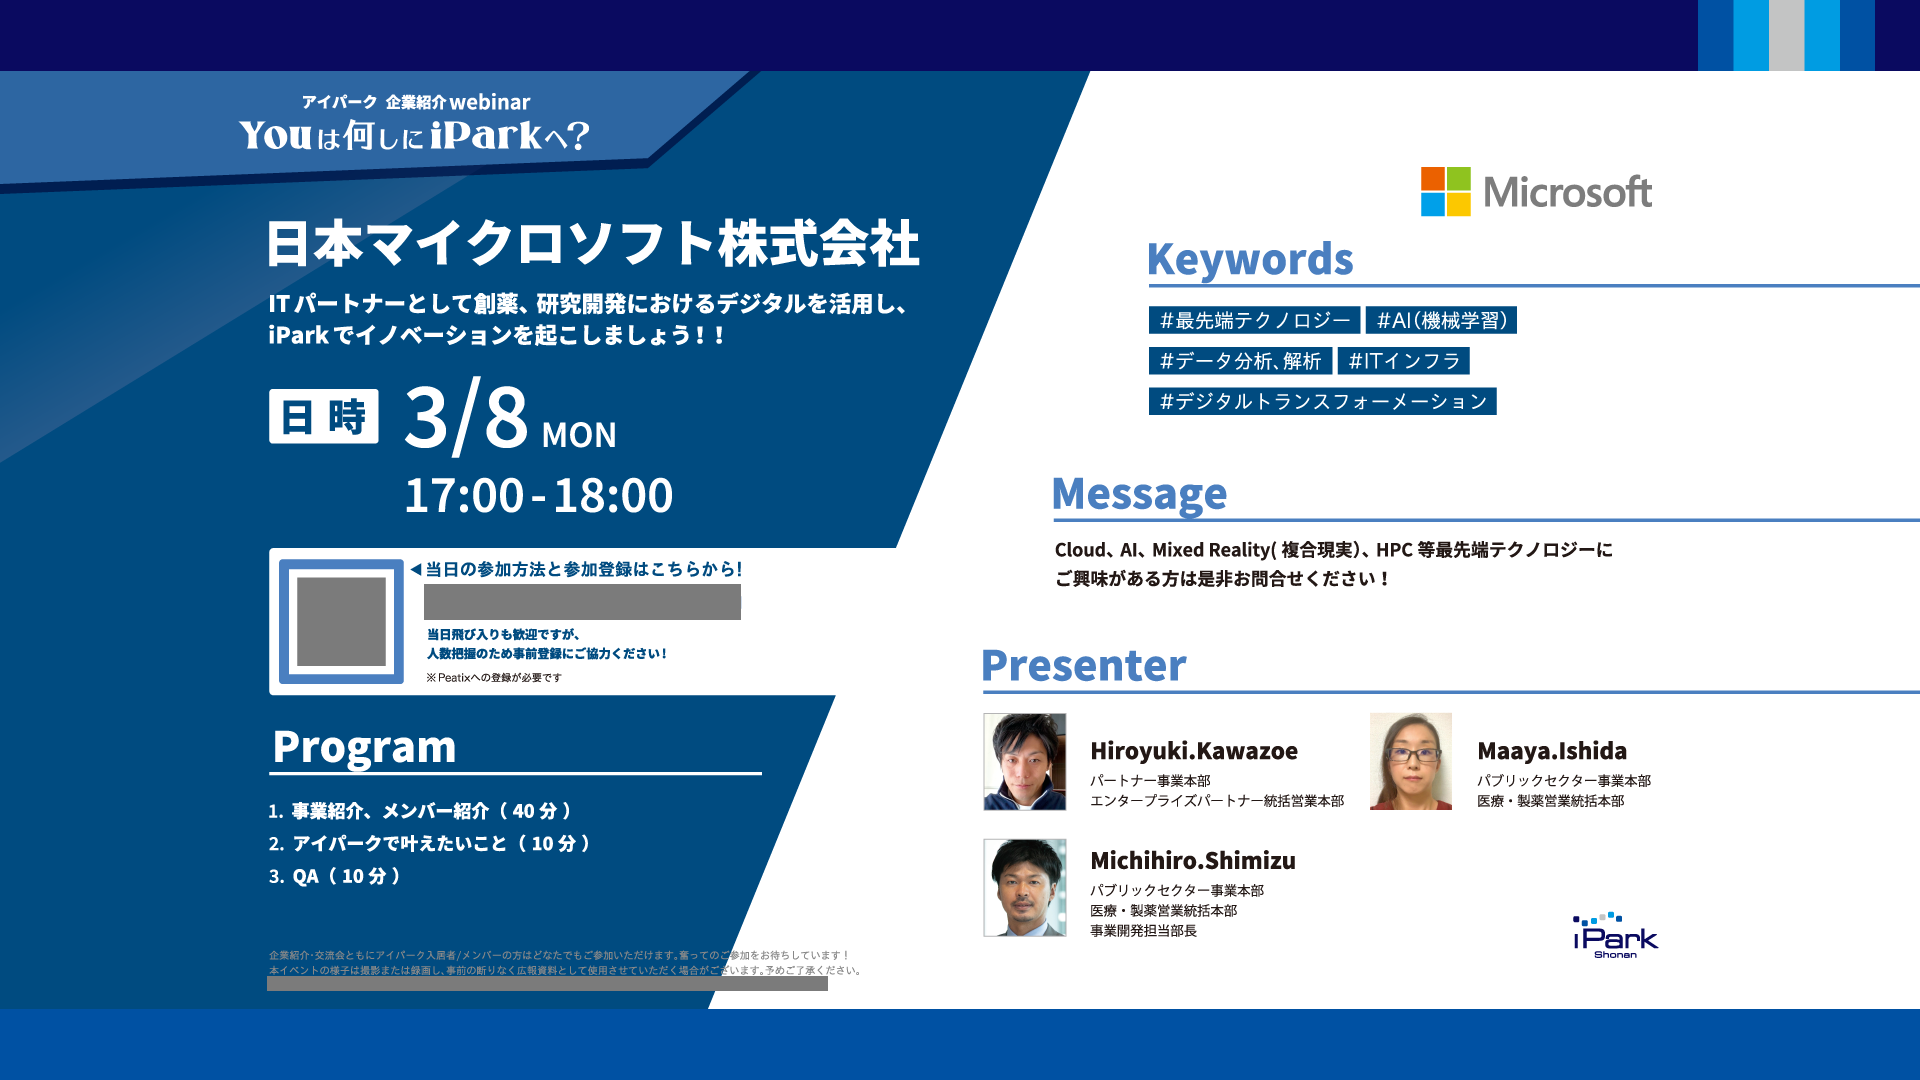 210308-YOUは何しに-マイクロソフト-SNS.png